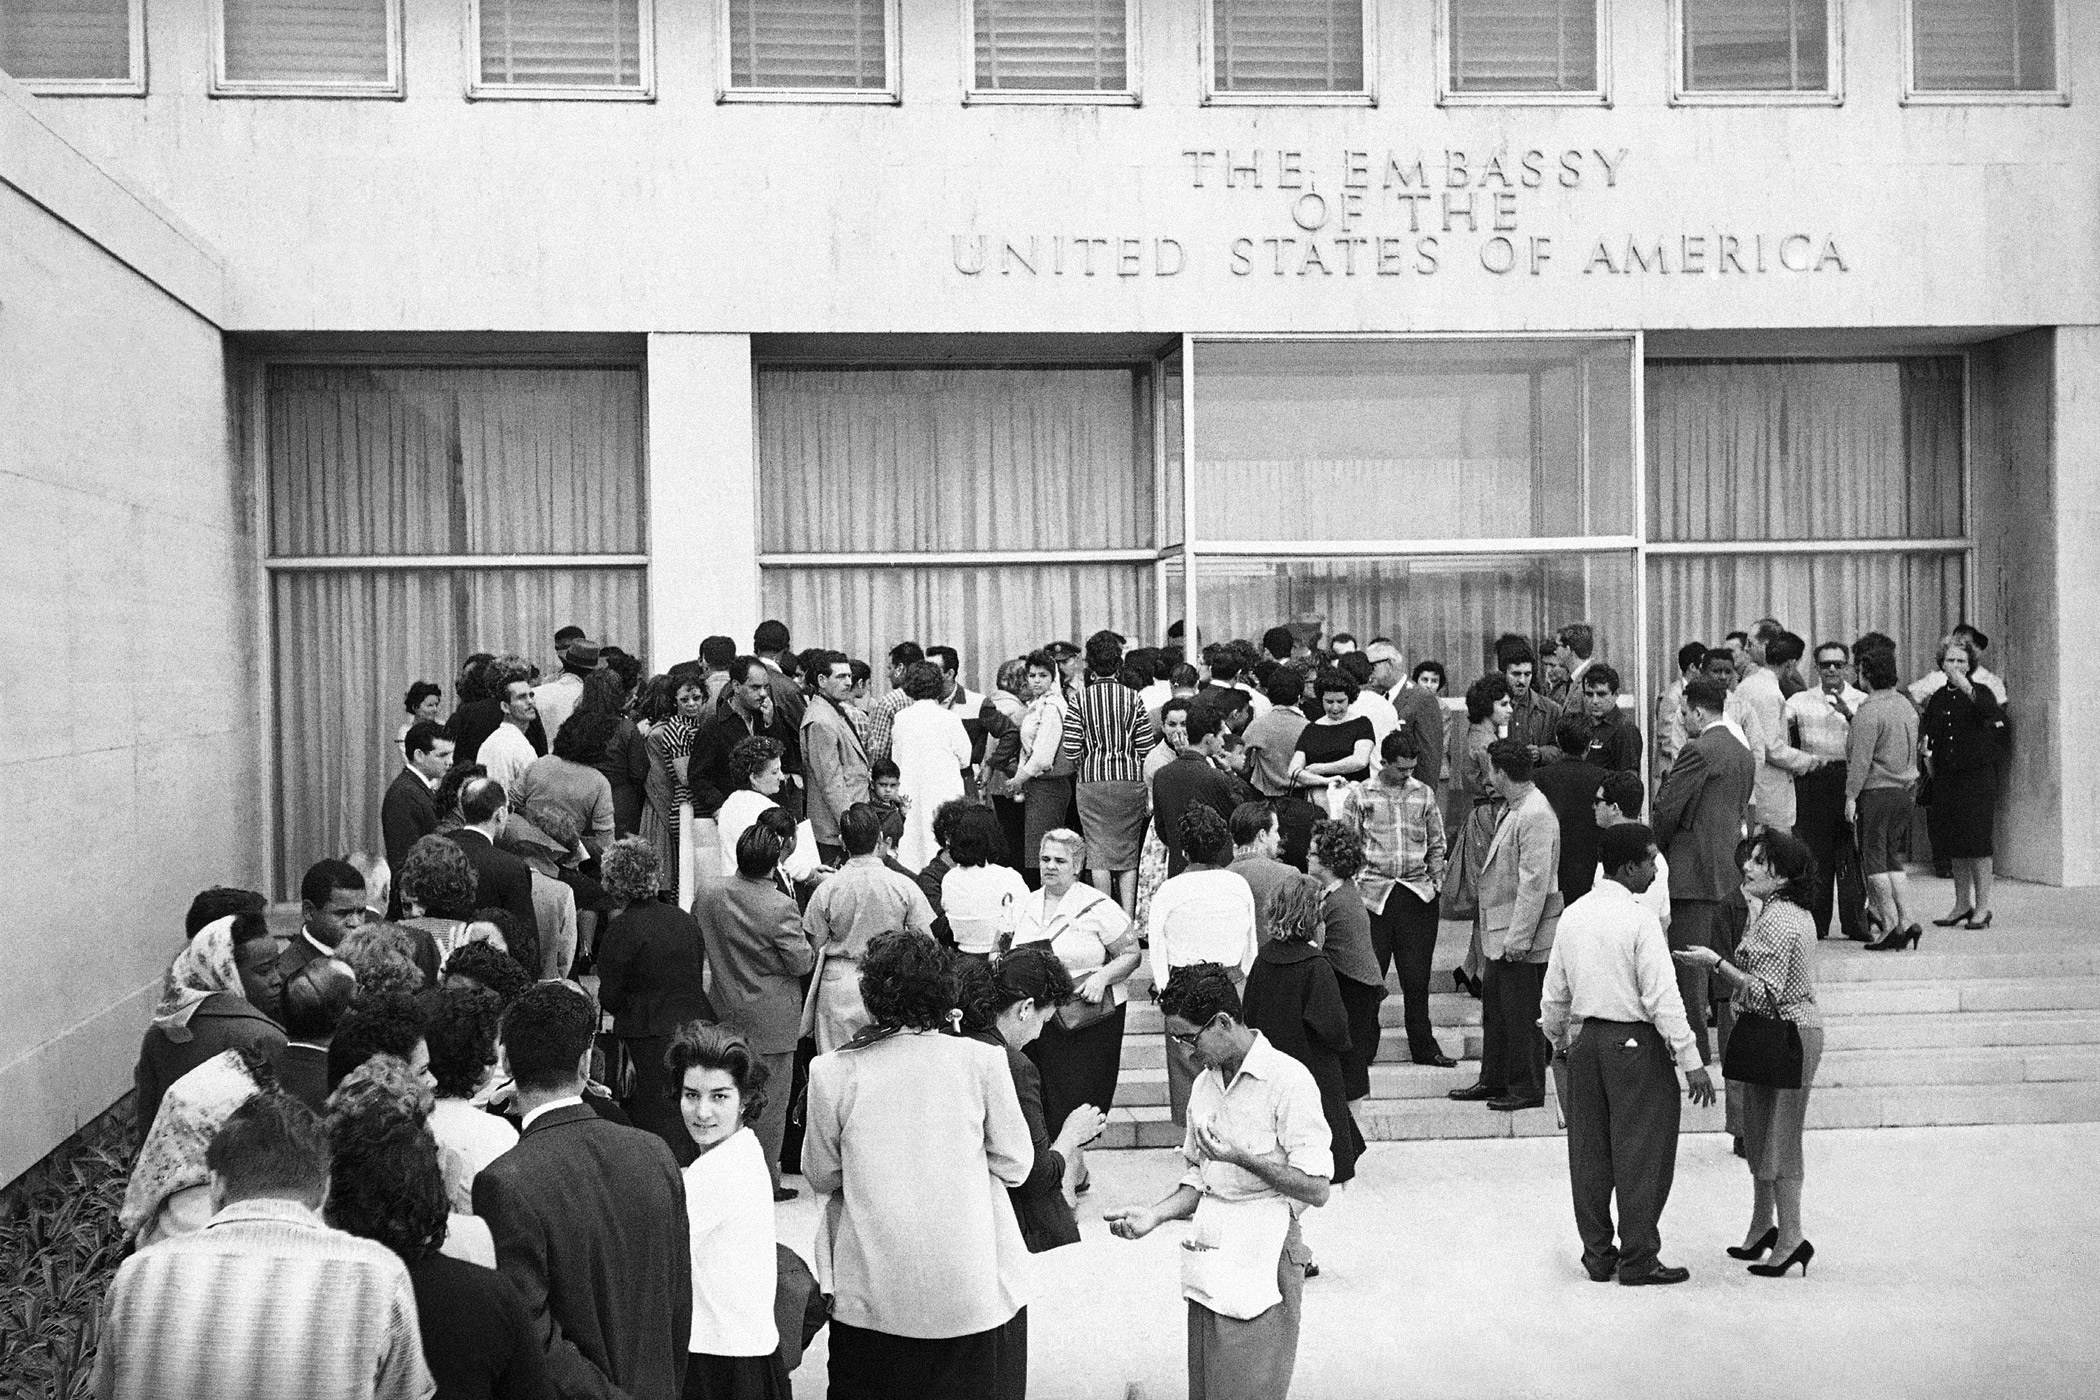 Cubans queue outside the U.S. embassy in hopes of obtaining visas after President Fidel Castro ordered the embassy to reduce its staff in Havana on  Jan. 3, 1961. After the diplomatic break in 1961, Washington was without a presence in Cuba until 1977.